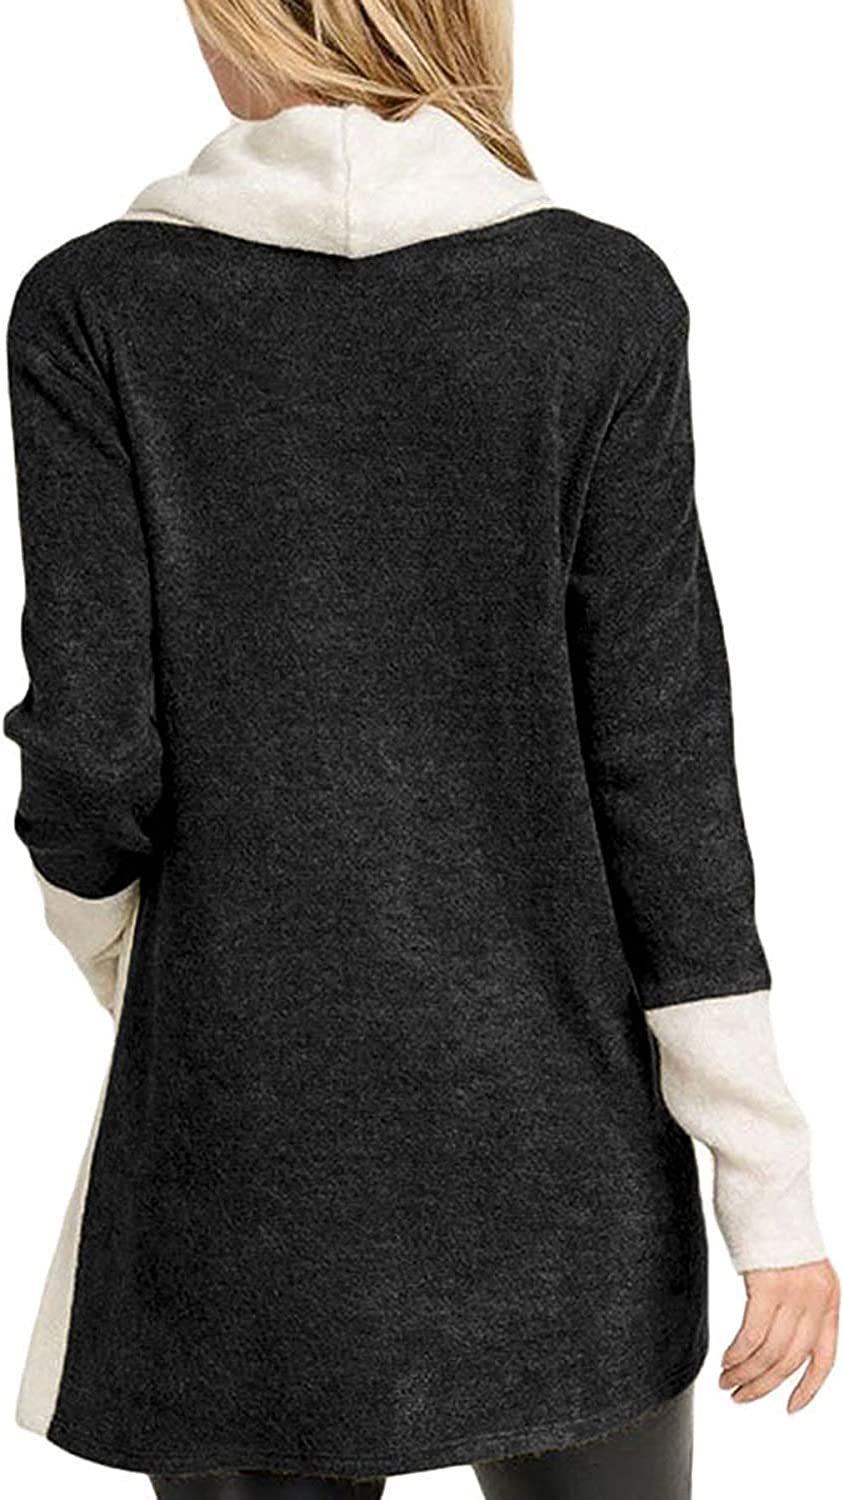 Salamola Womens Turtleneck Long Sleeve Contrasting Trim Button Tunic Tops